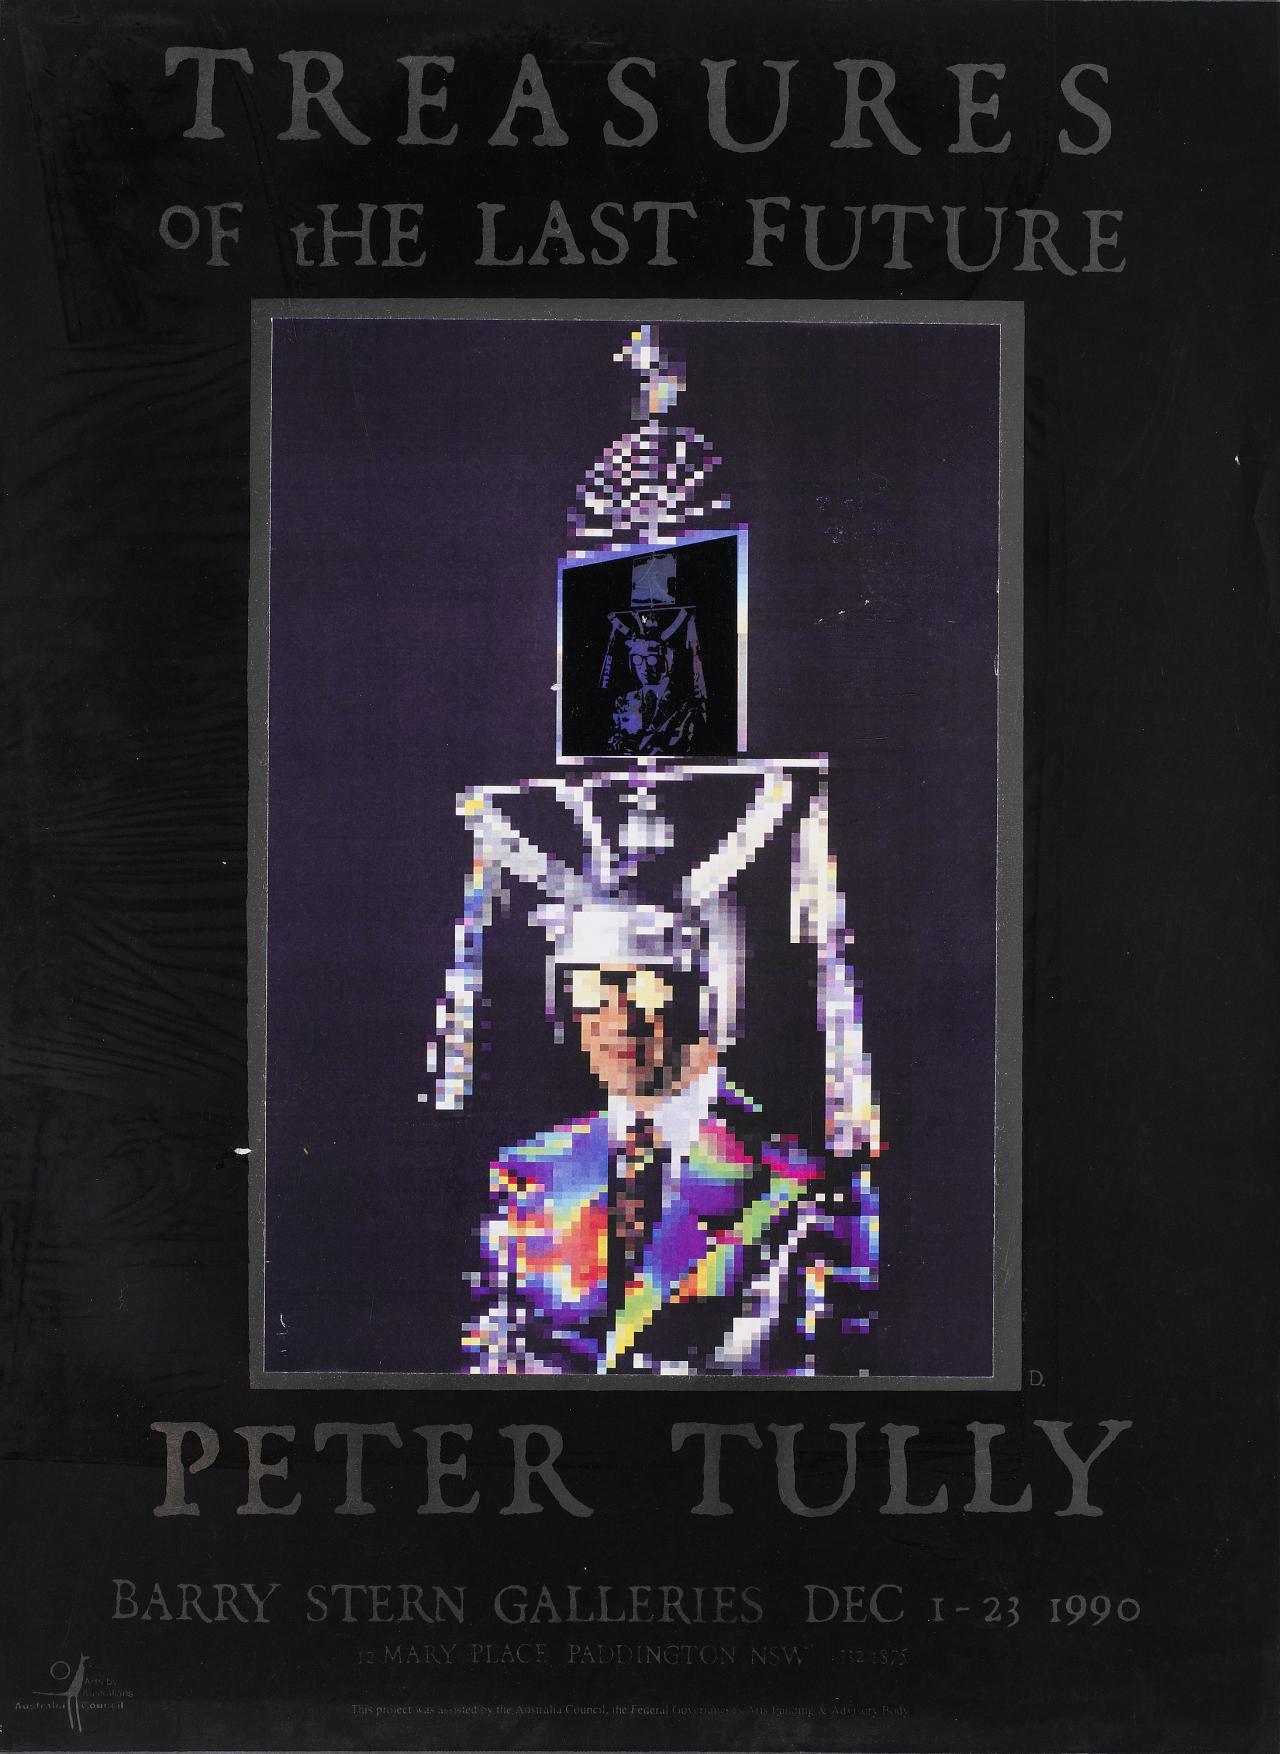 Treasures of the last future: Peter Tully